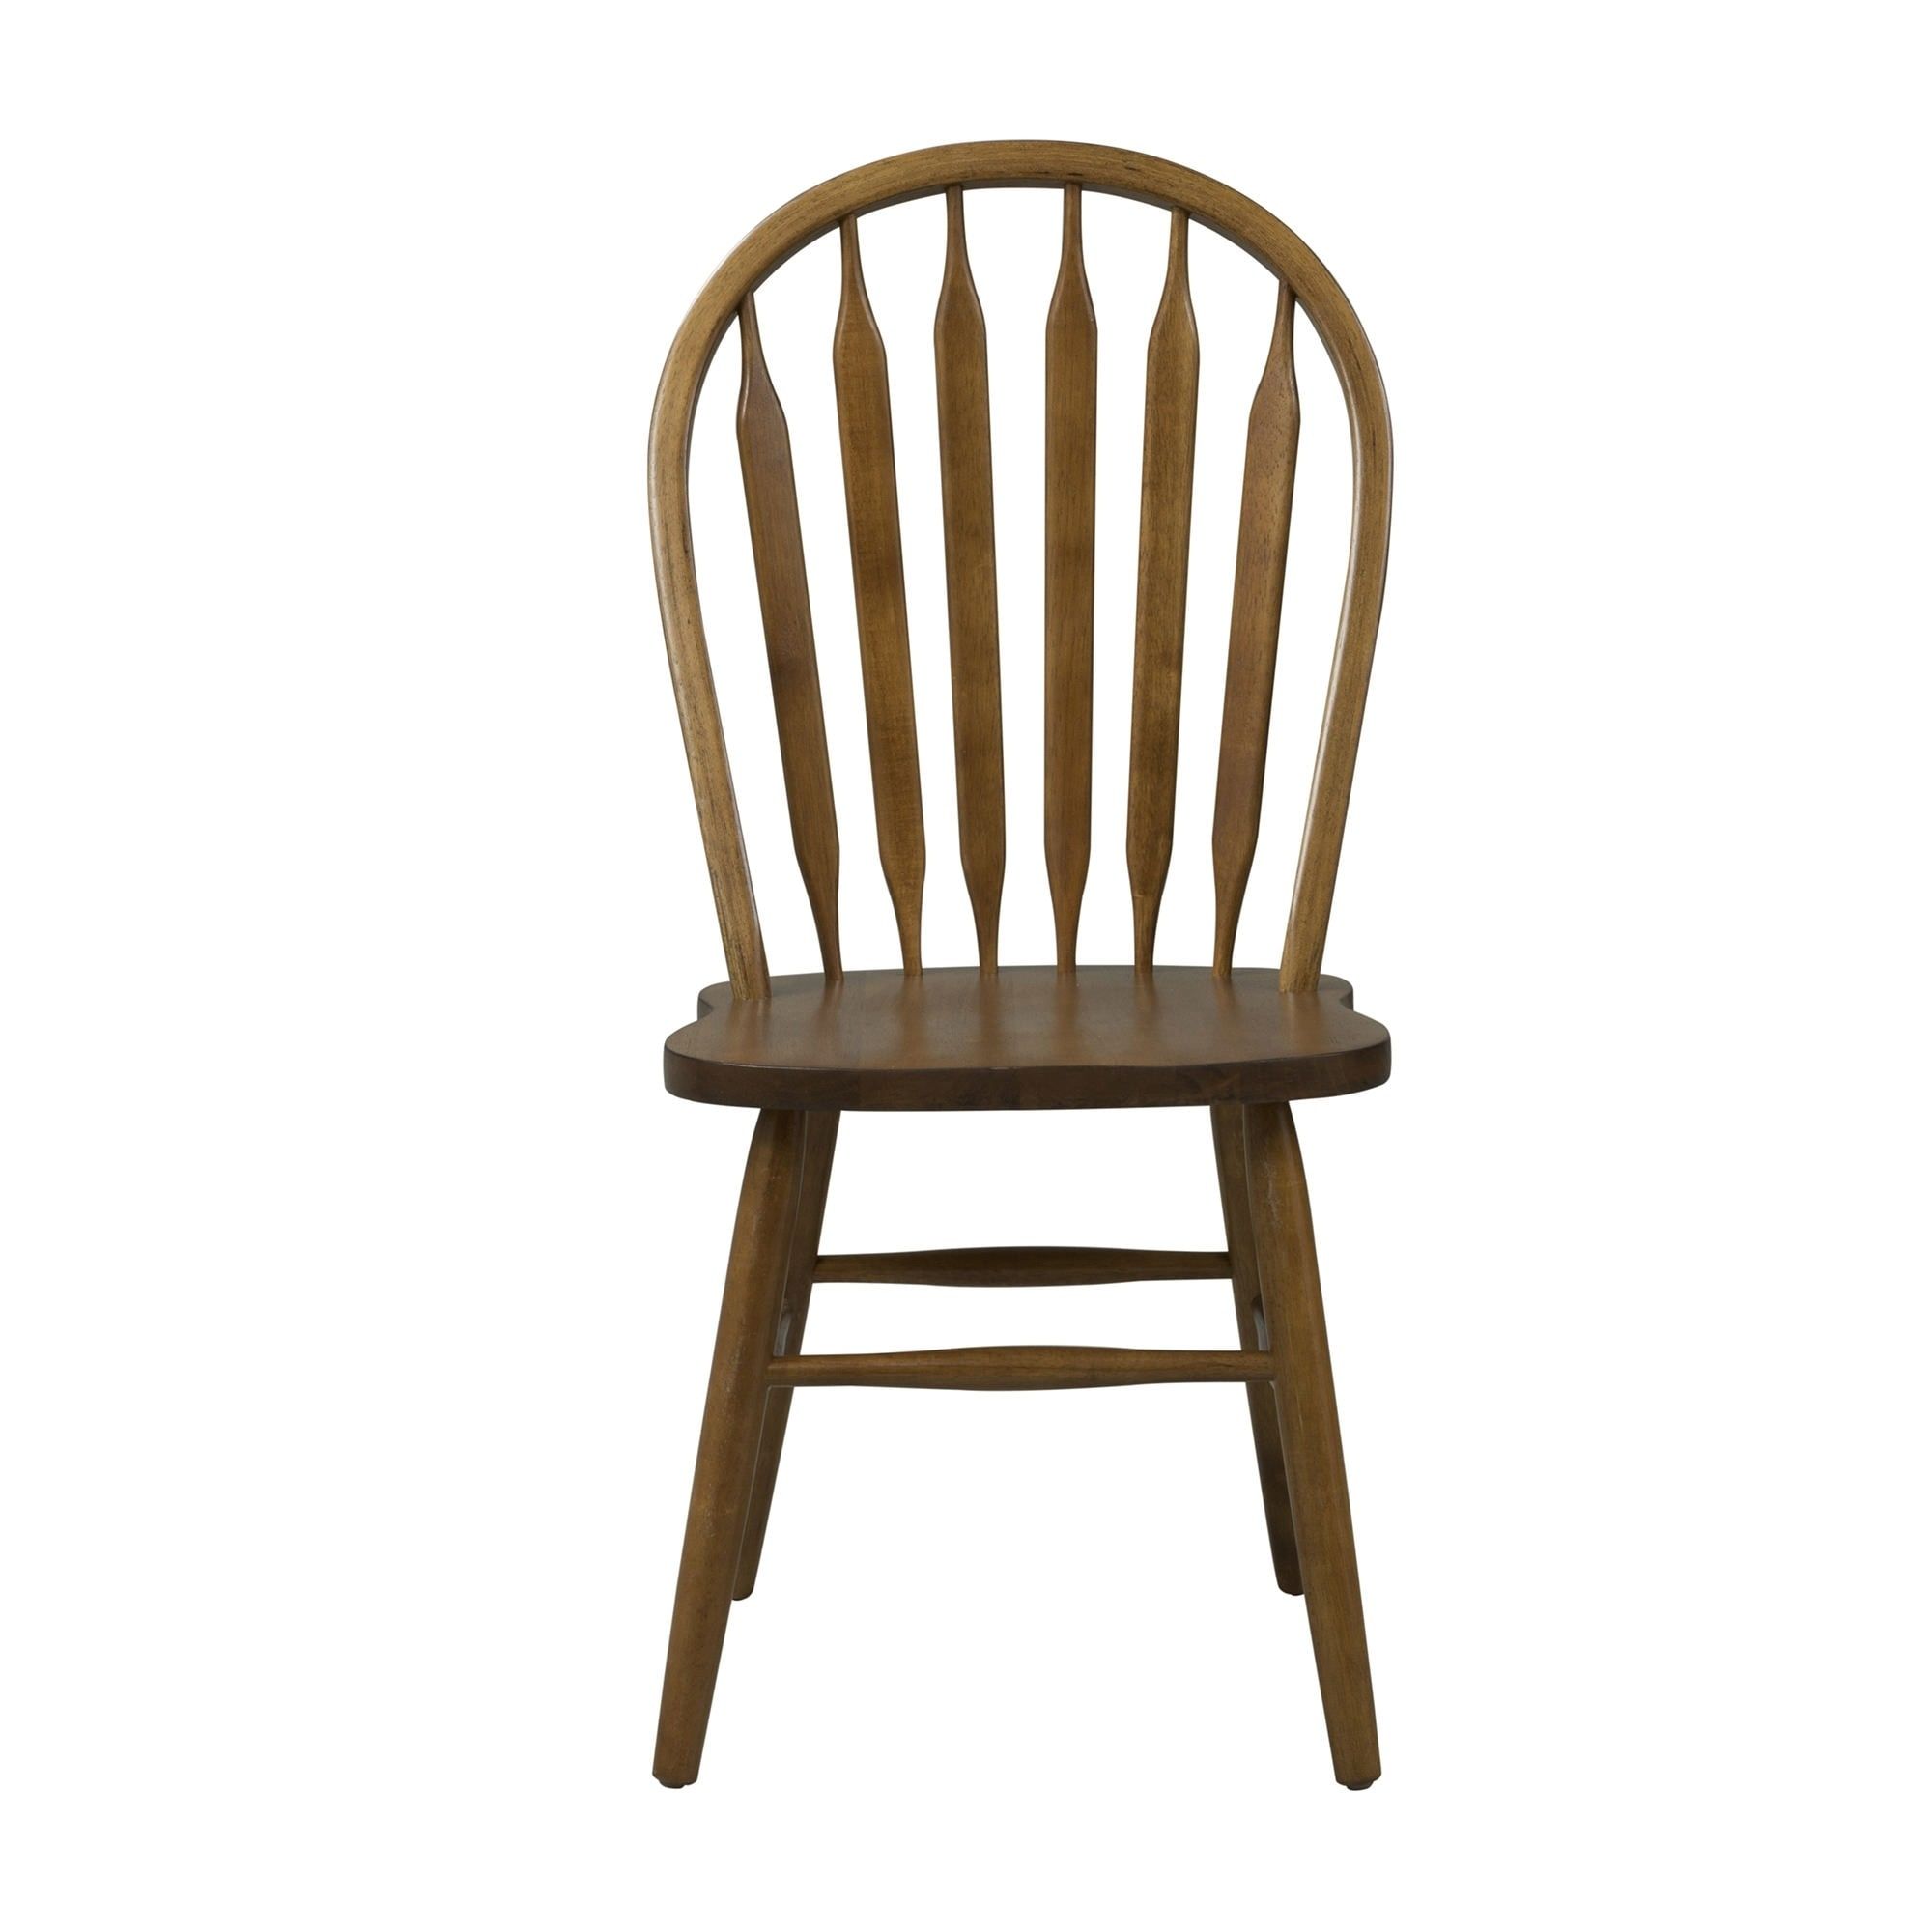 Genial Shop Copper Grove Buckhill Traditional Oak Arrowback Dining Chair   Free  Shipping Today   Overstock.com   20882476